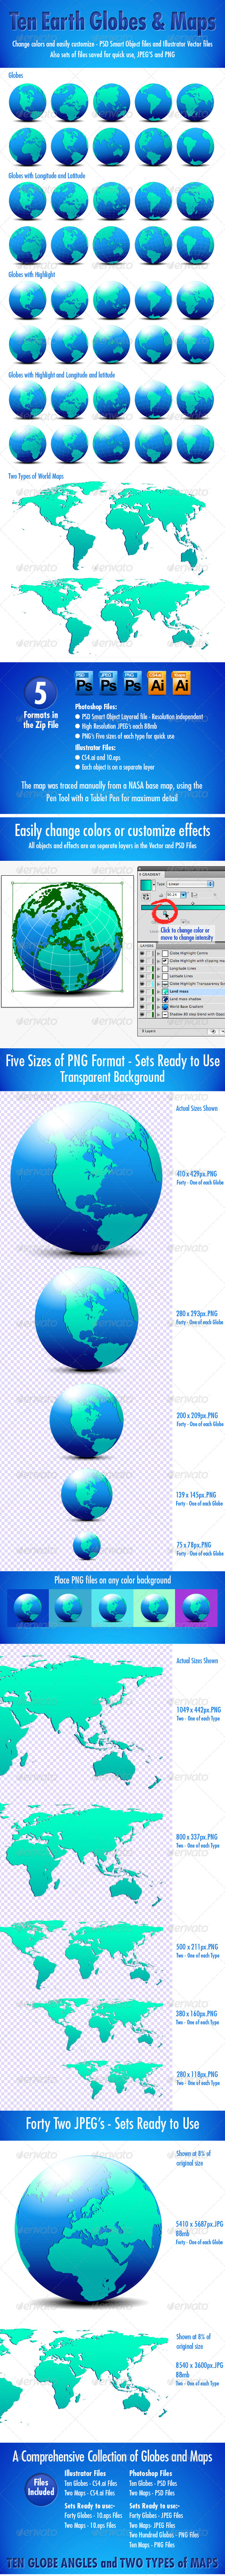 GraphicRiver Globes and World Maps Collection 4340944